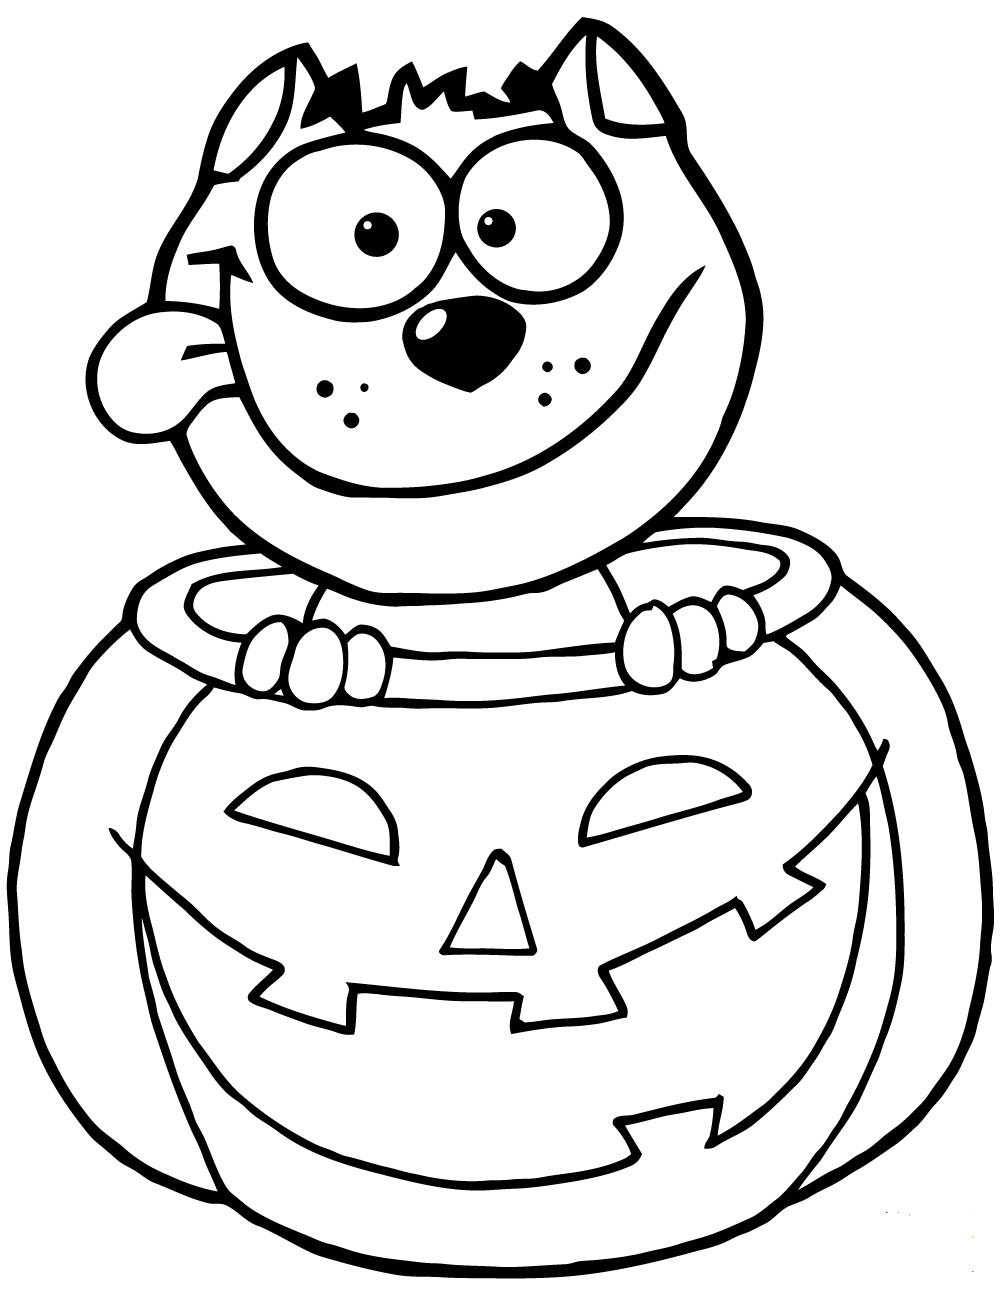 inside of a pumpkin coloring pages | 30 Free Printable Pumpkin Coloring Pages